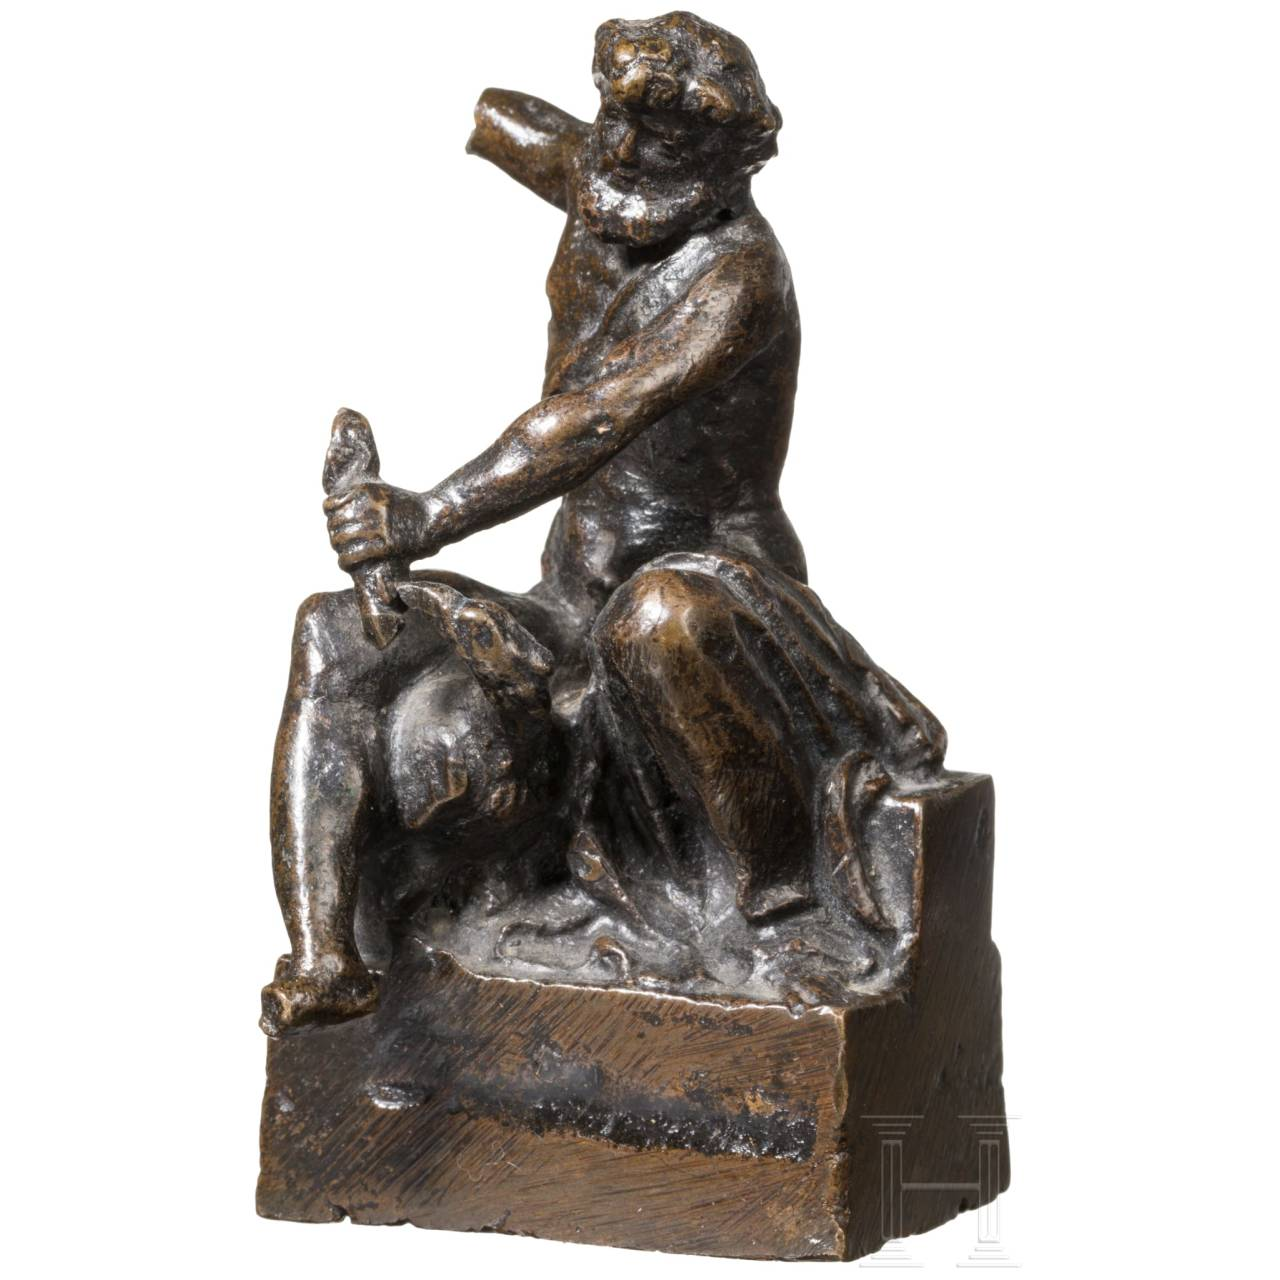 A small Renaissance bronze sculpture of Zeus with eagle, probably Italy, 17th century